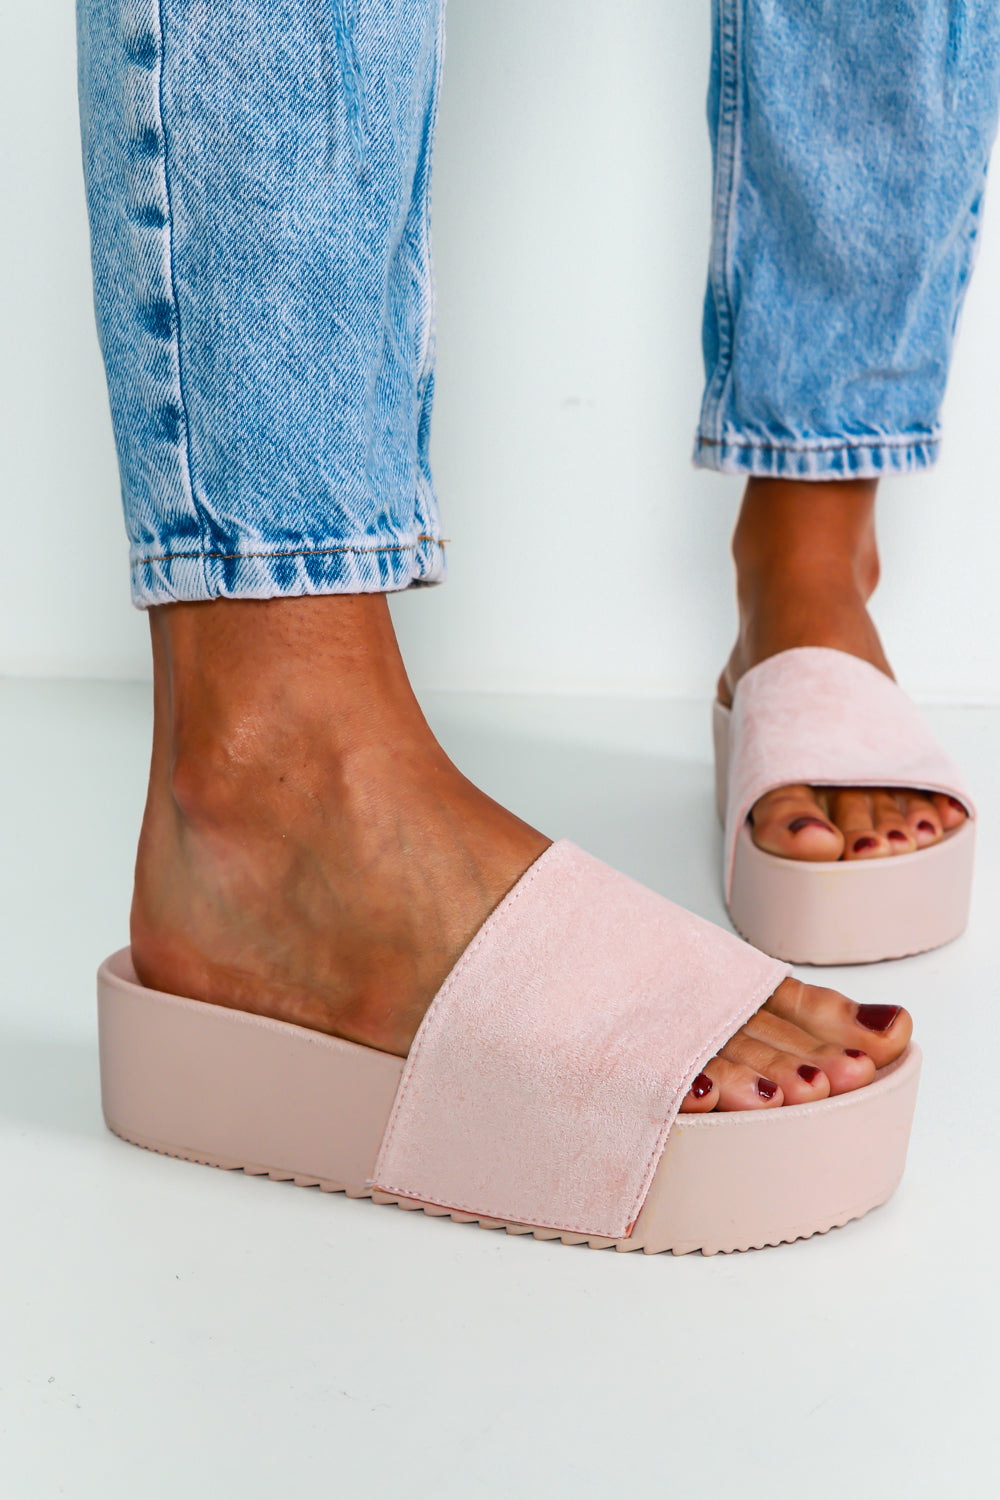 Slide By Slide - Flatform Sliders In PINK/SUEDE